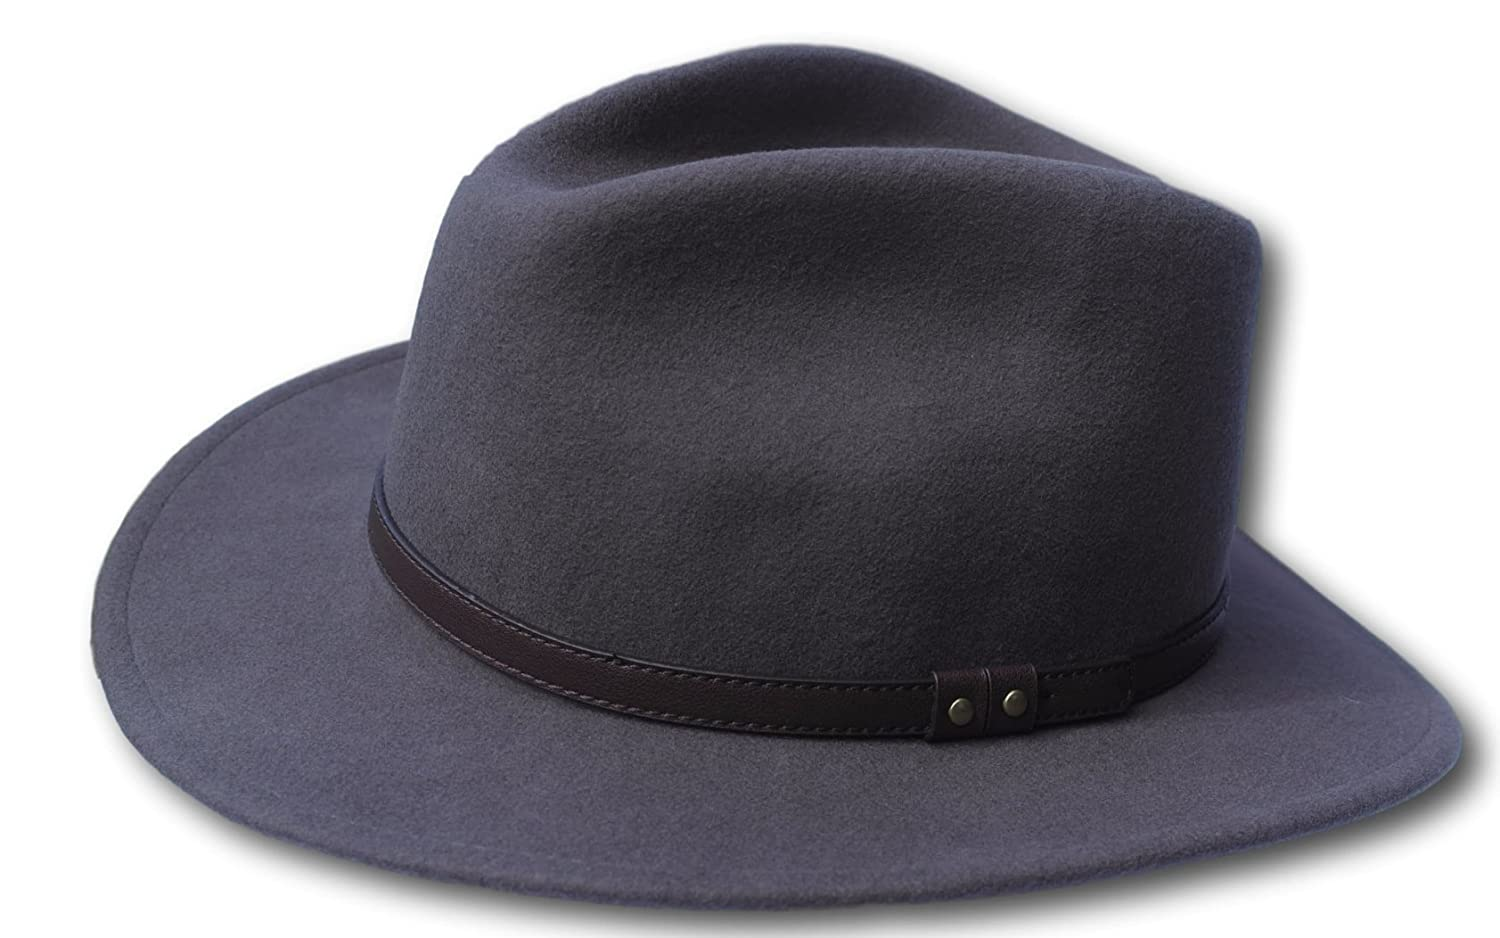 3559f3b48e2c3 Thorness Grey Wide Brim 100% Wool Felt Fedora Trilby Hat - Large at Amazon  Men s Clothing store